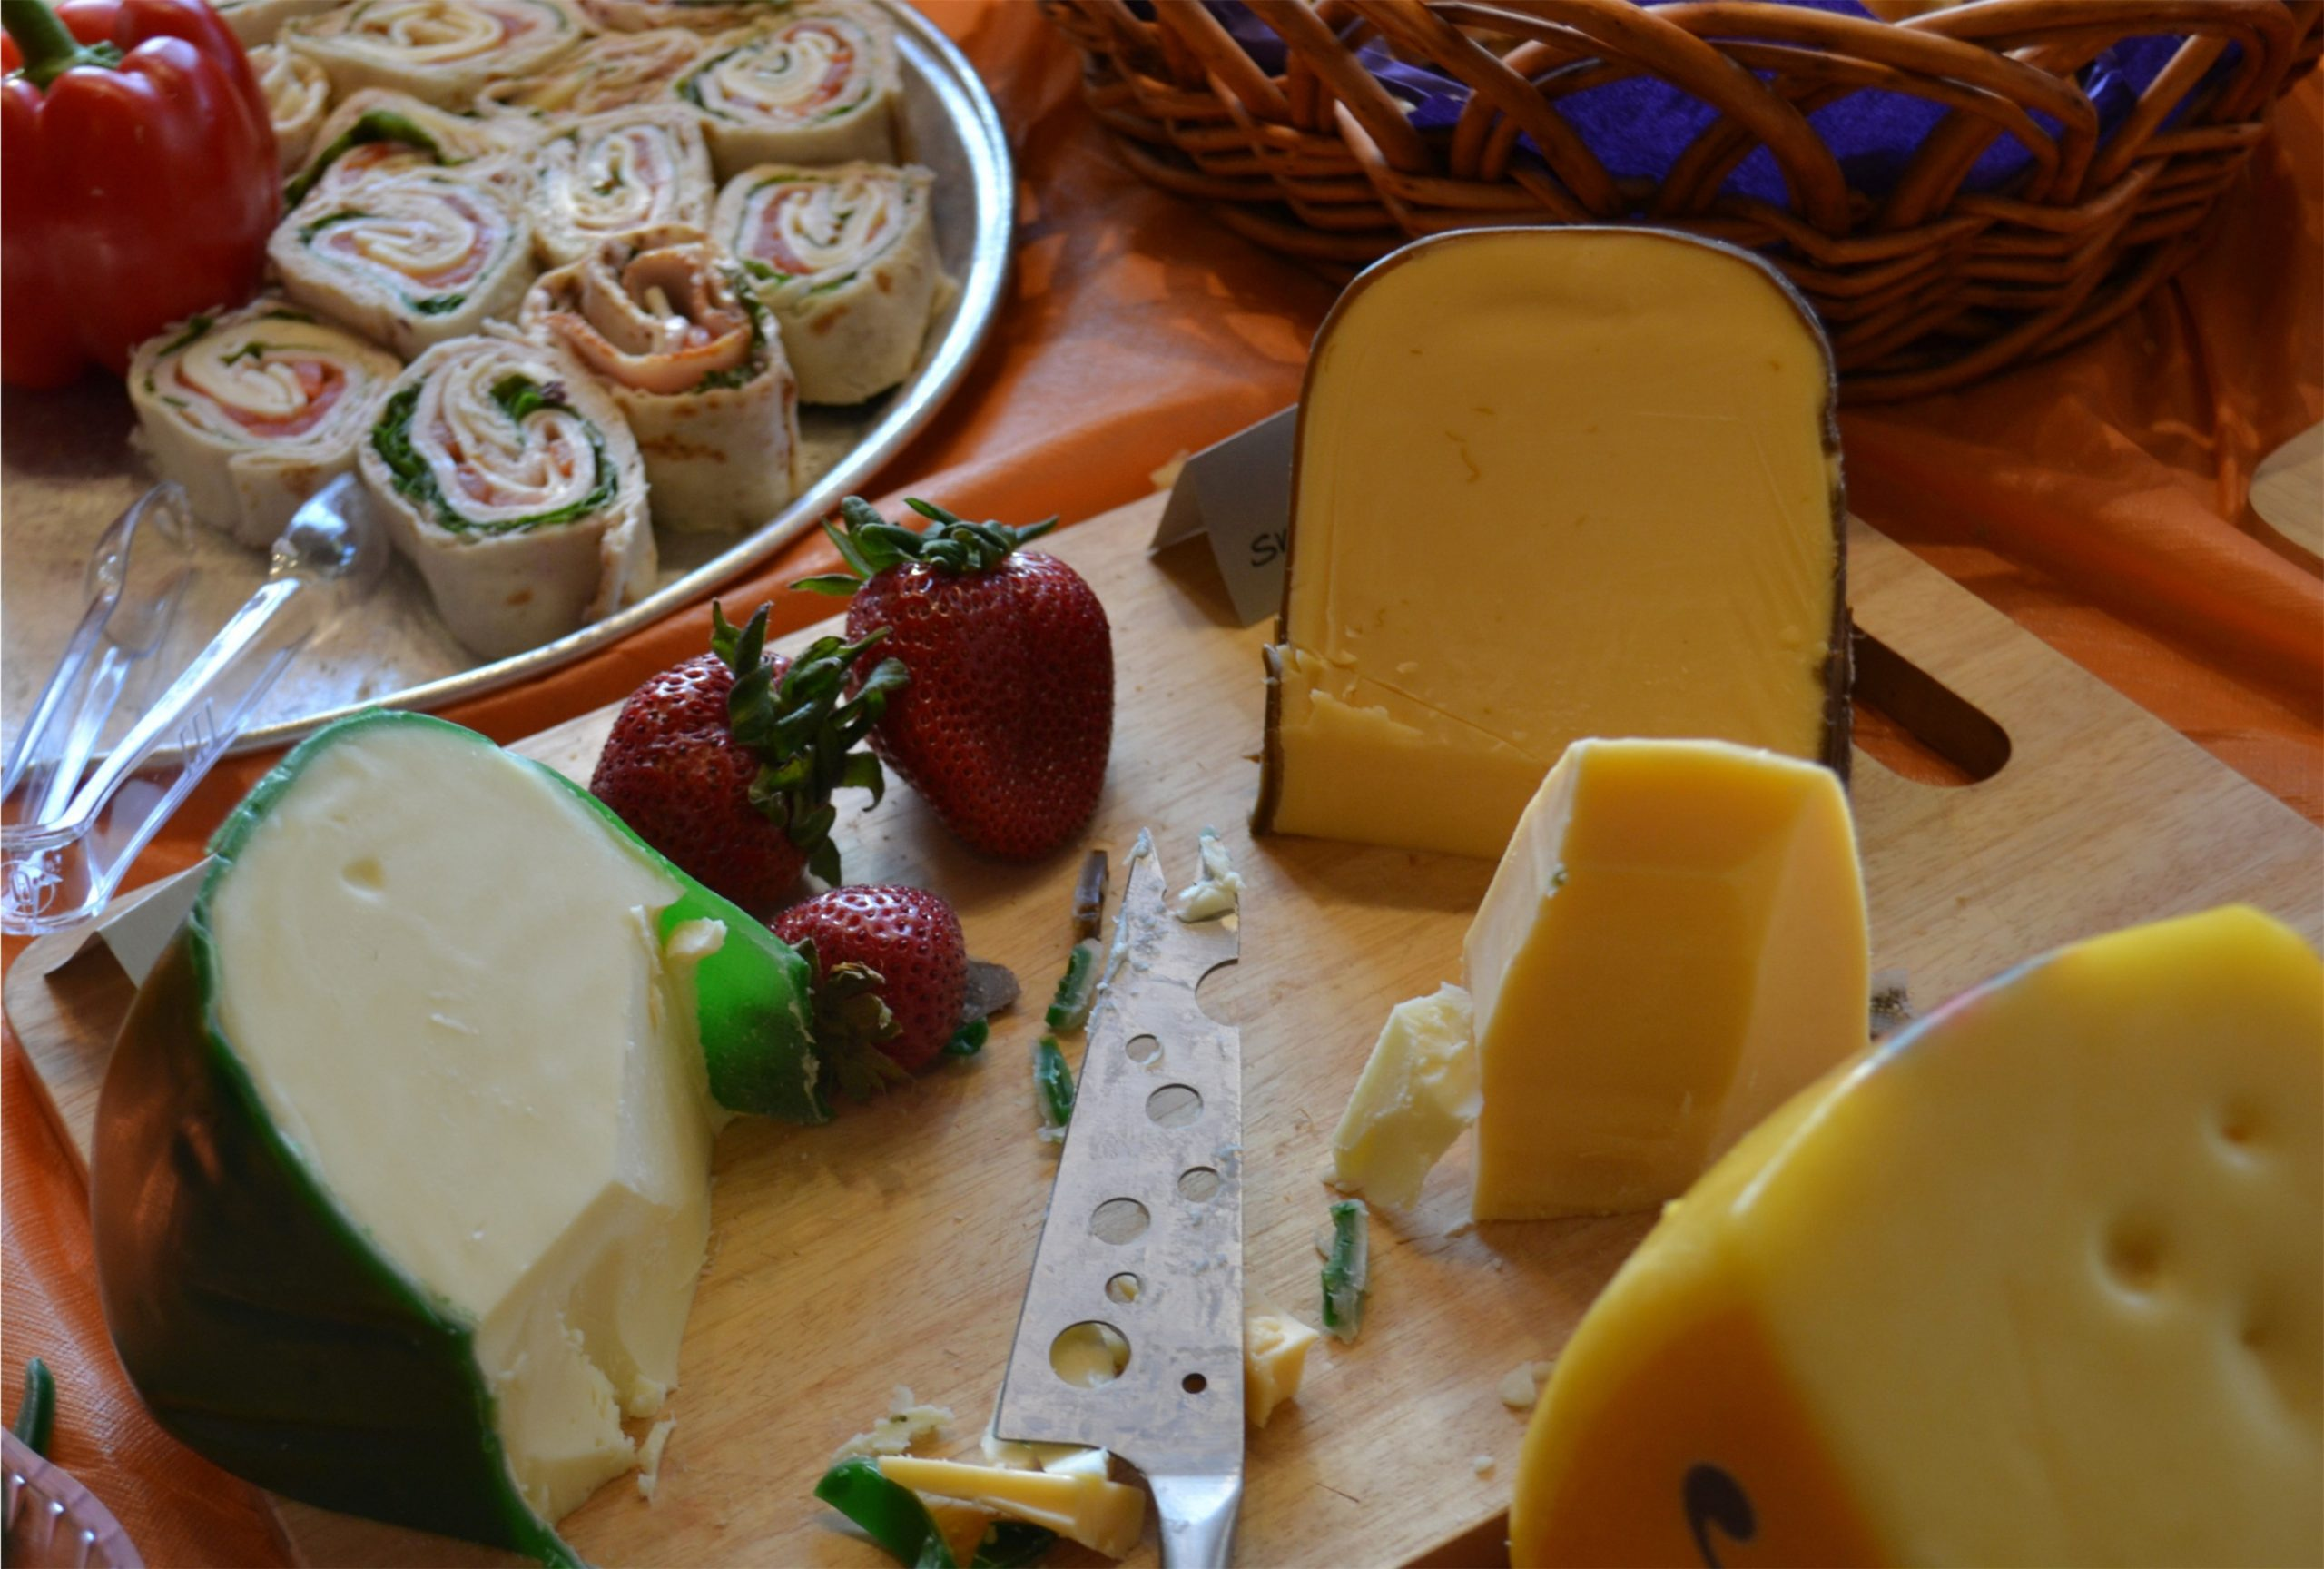 Photo of different cheeses on board with fruit.